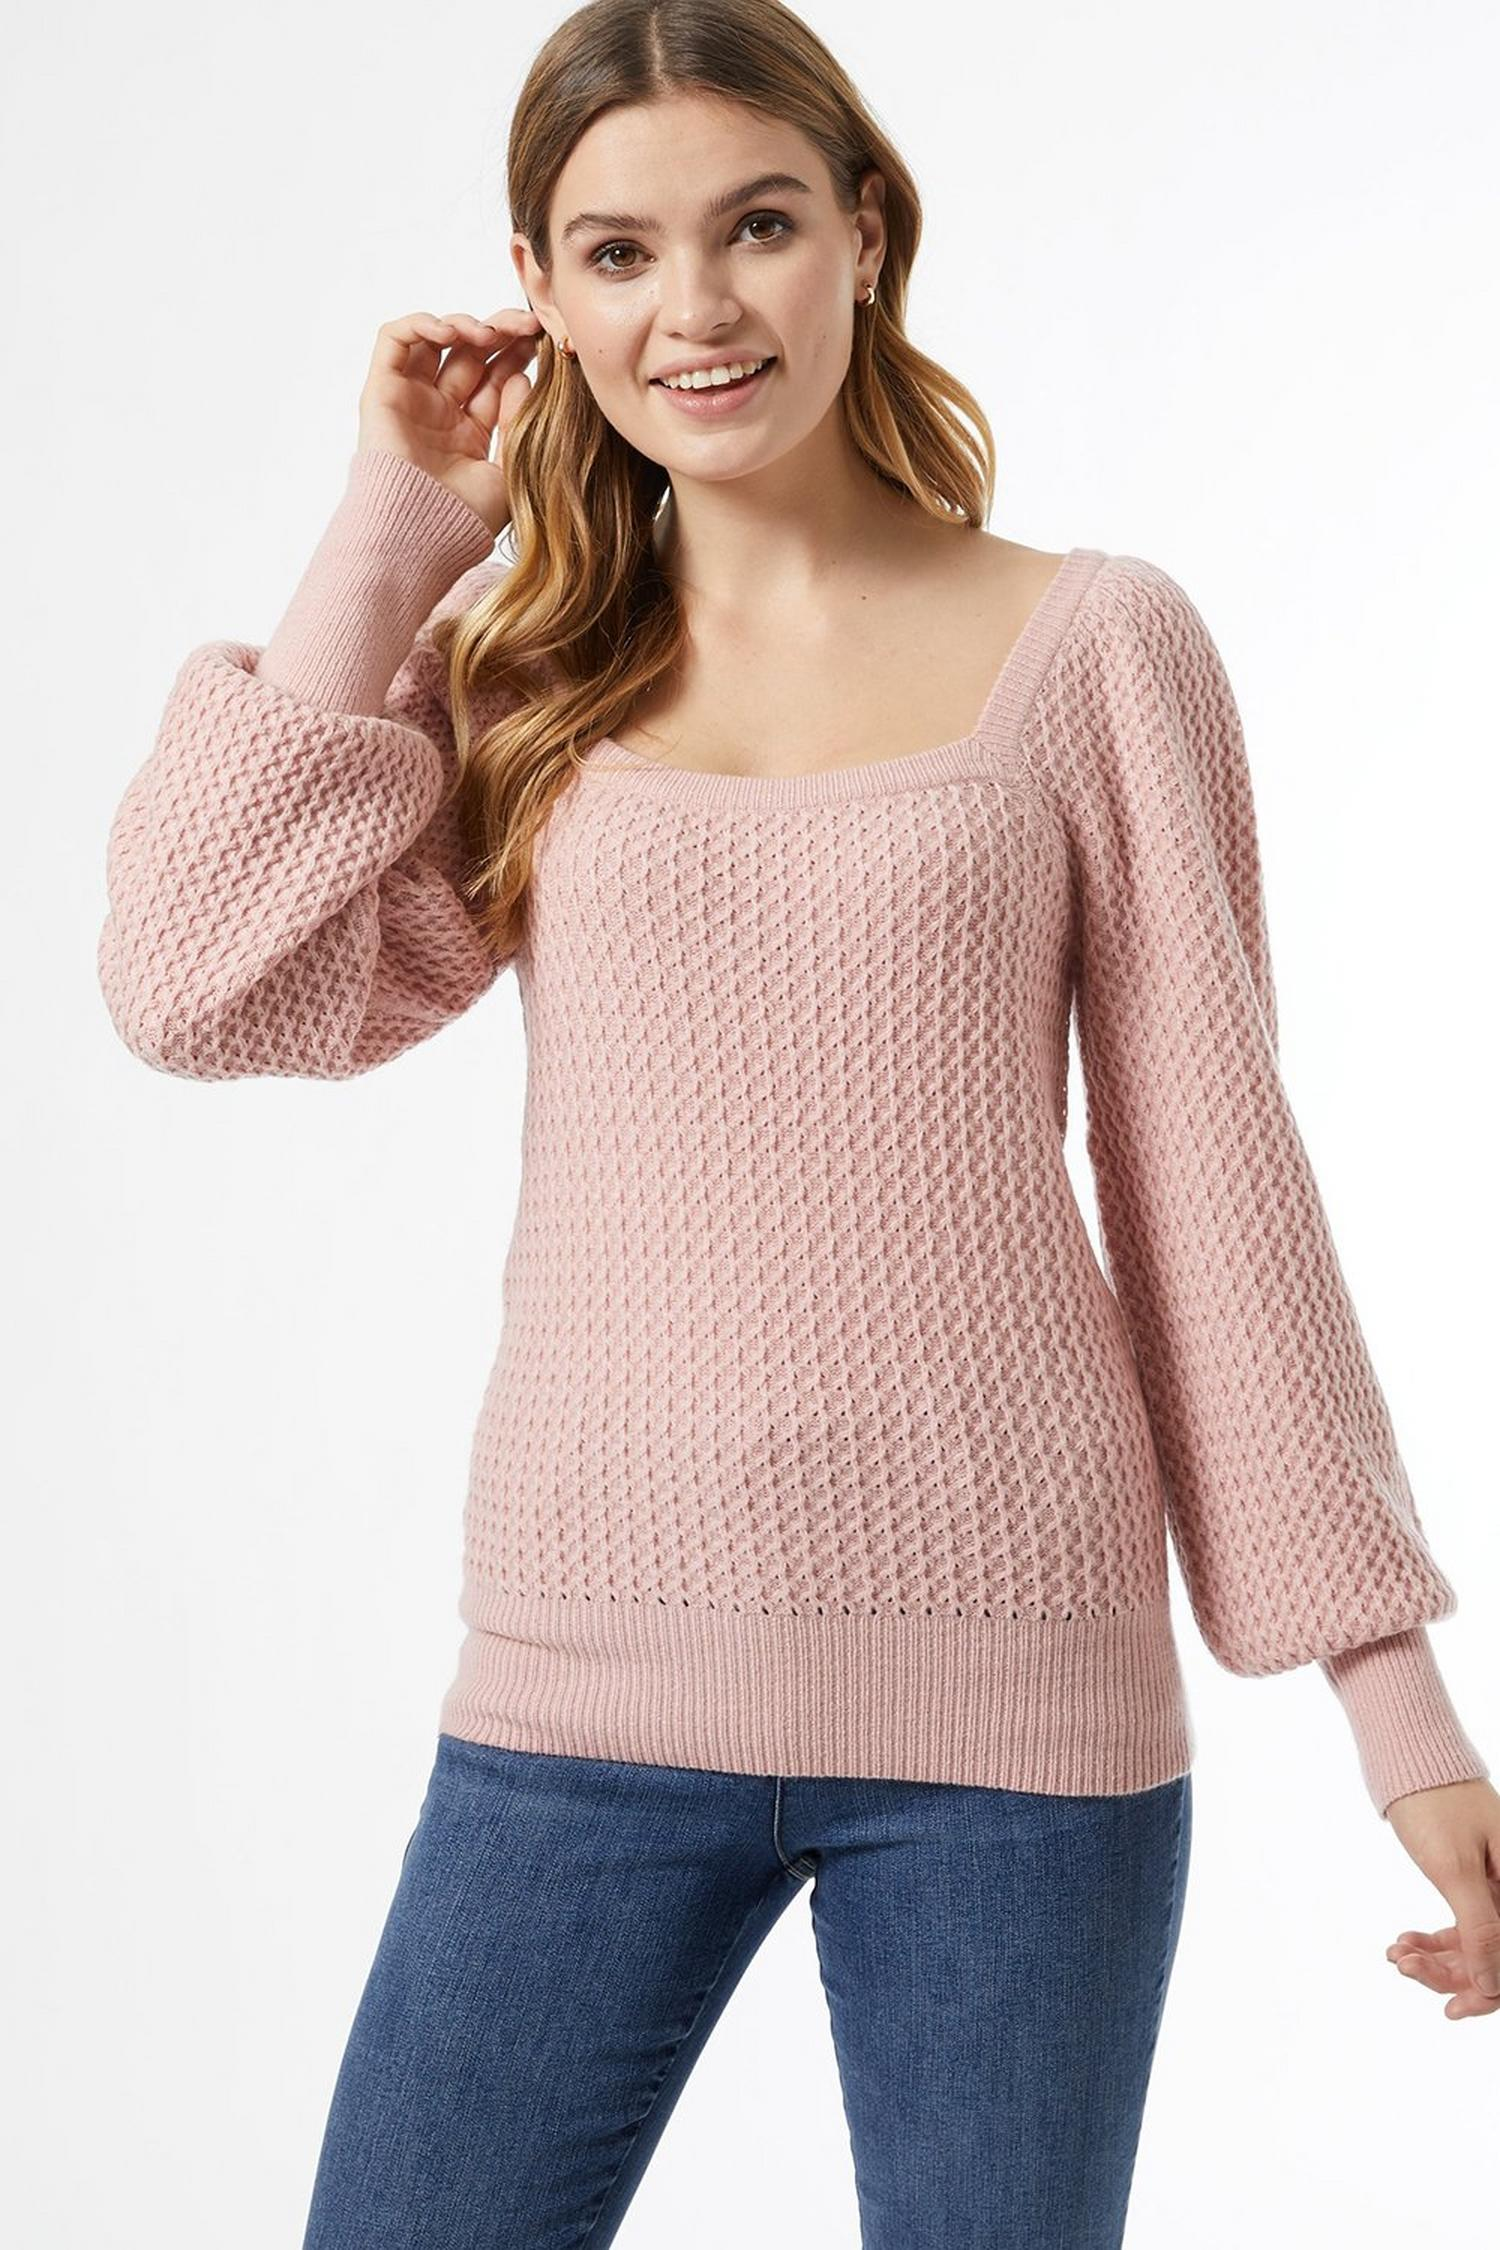 153 Blush Square Neck Jumper image number 4